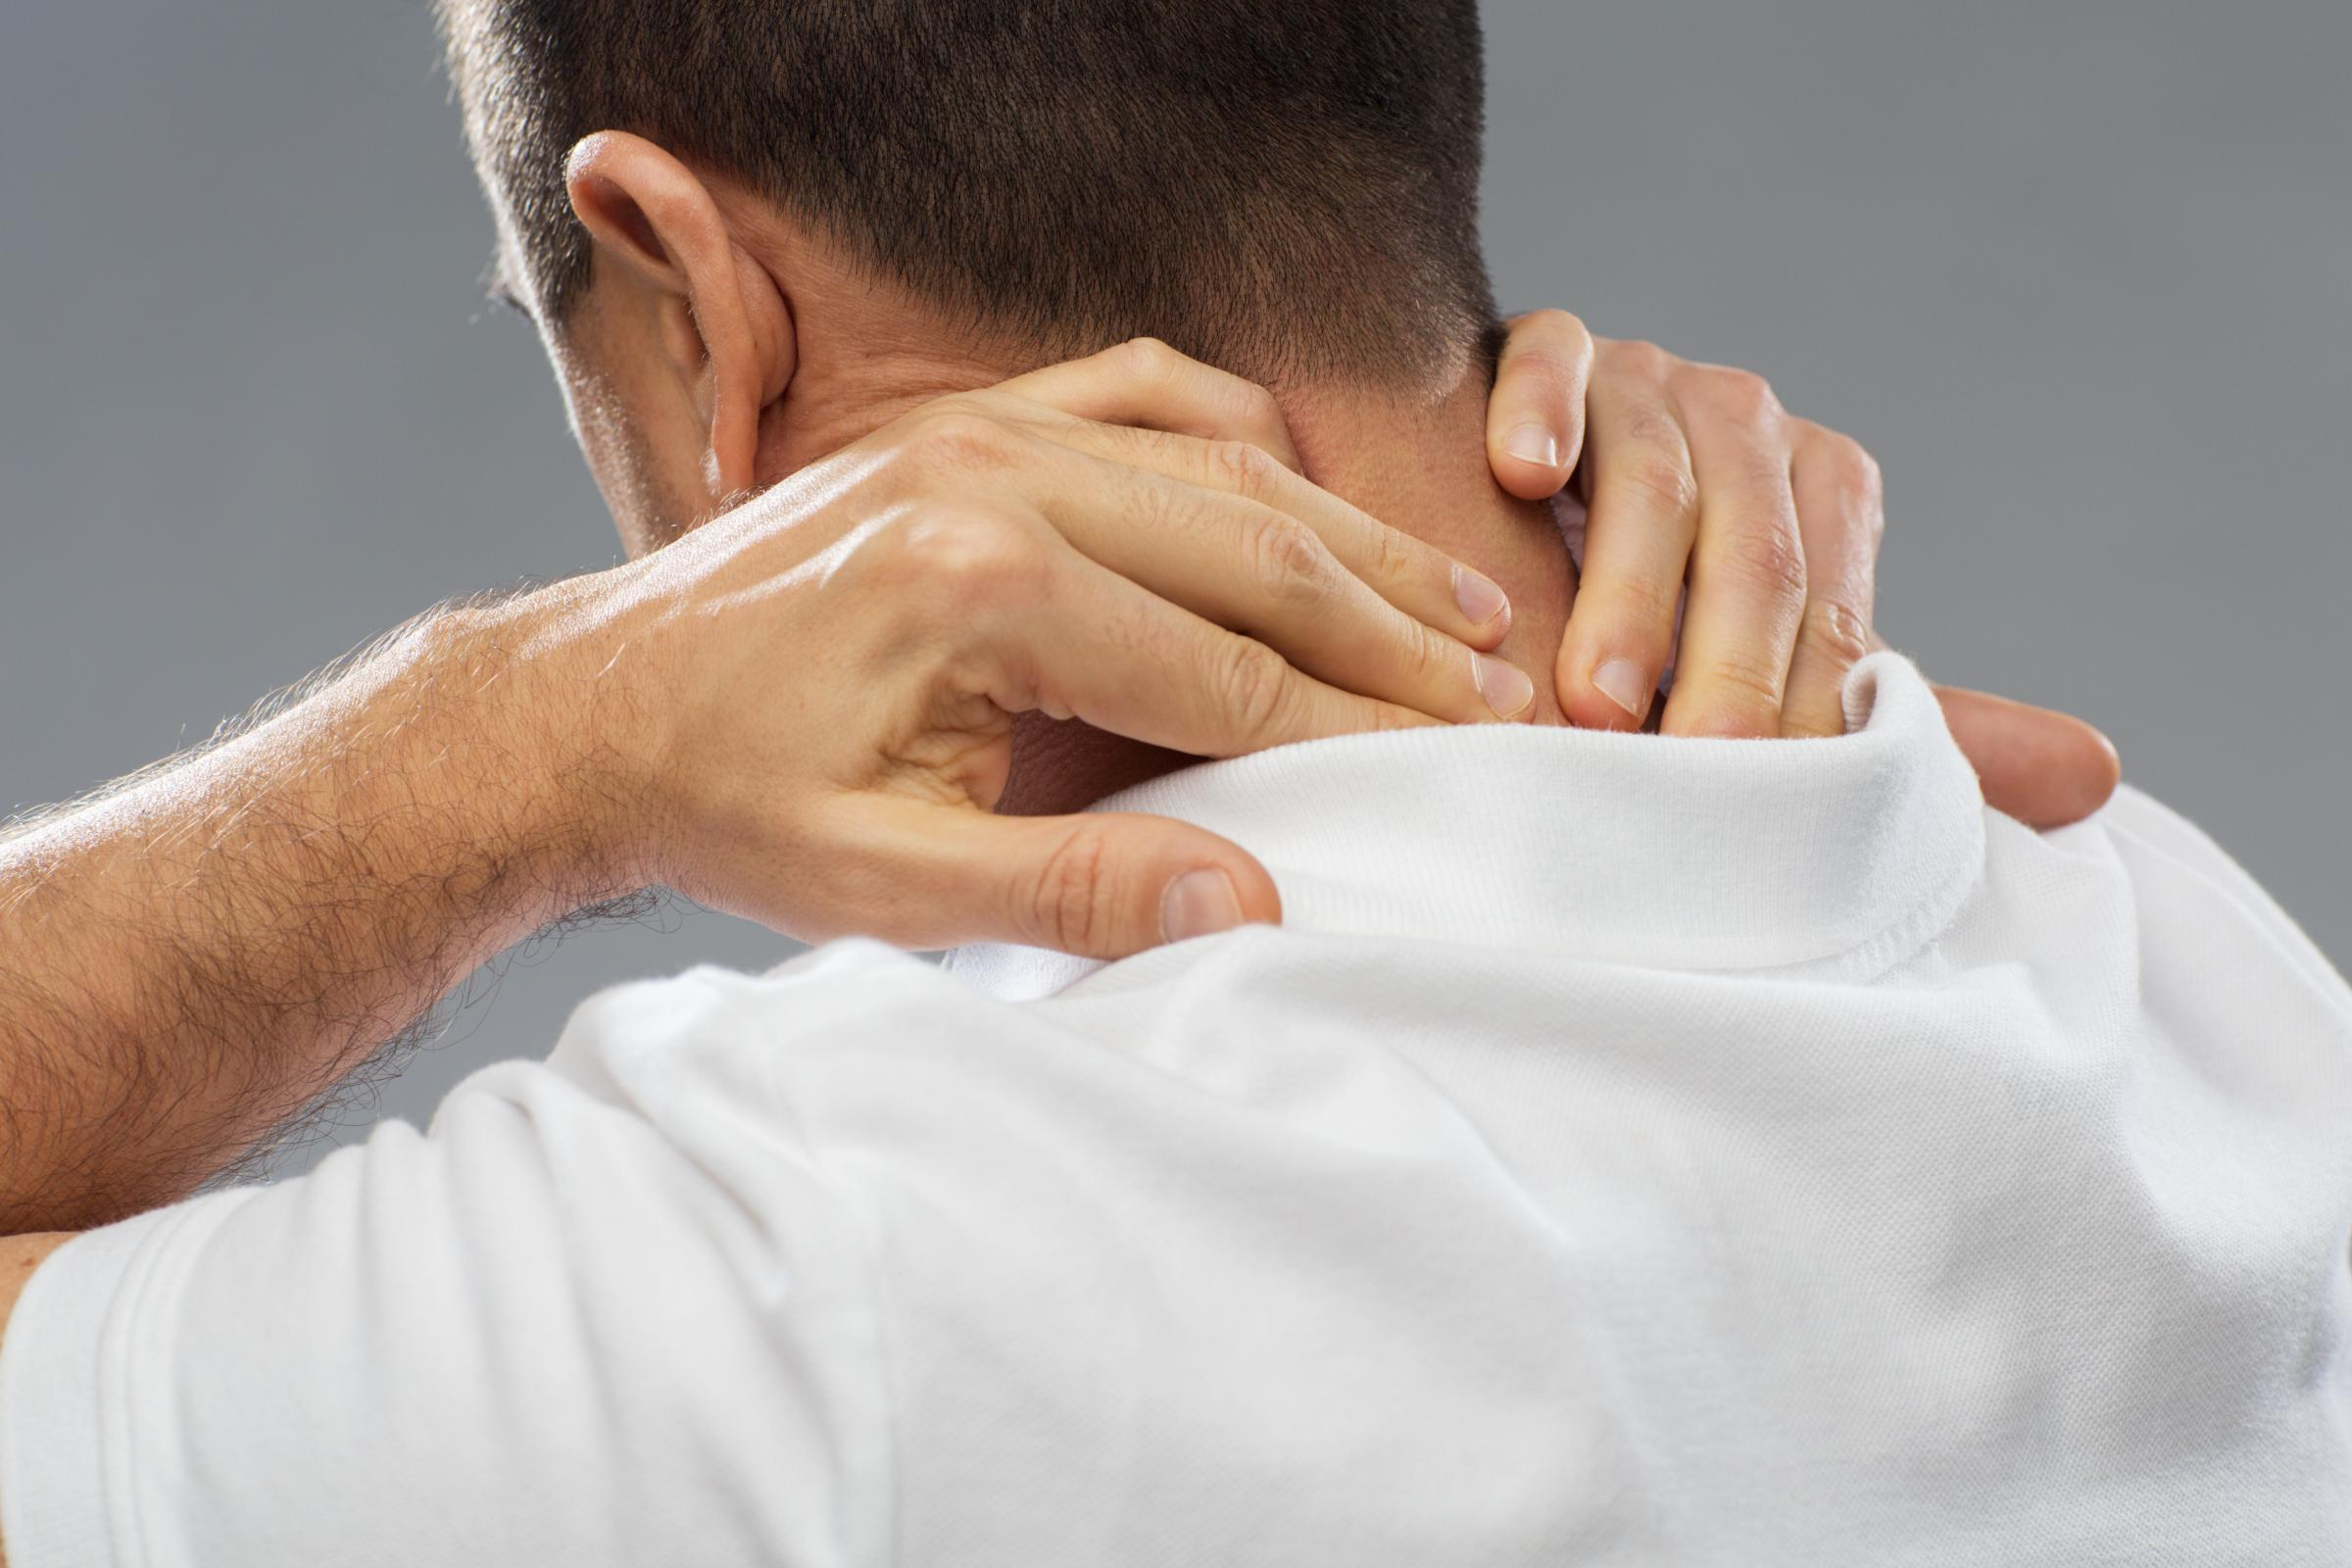 injured man touching the back of his neck